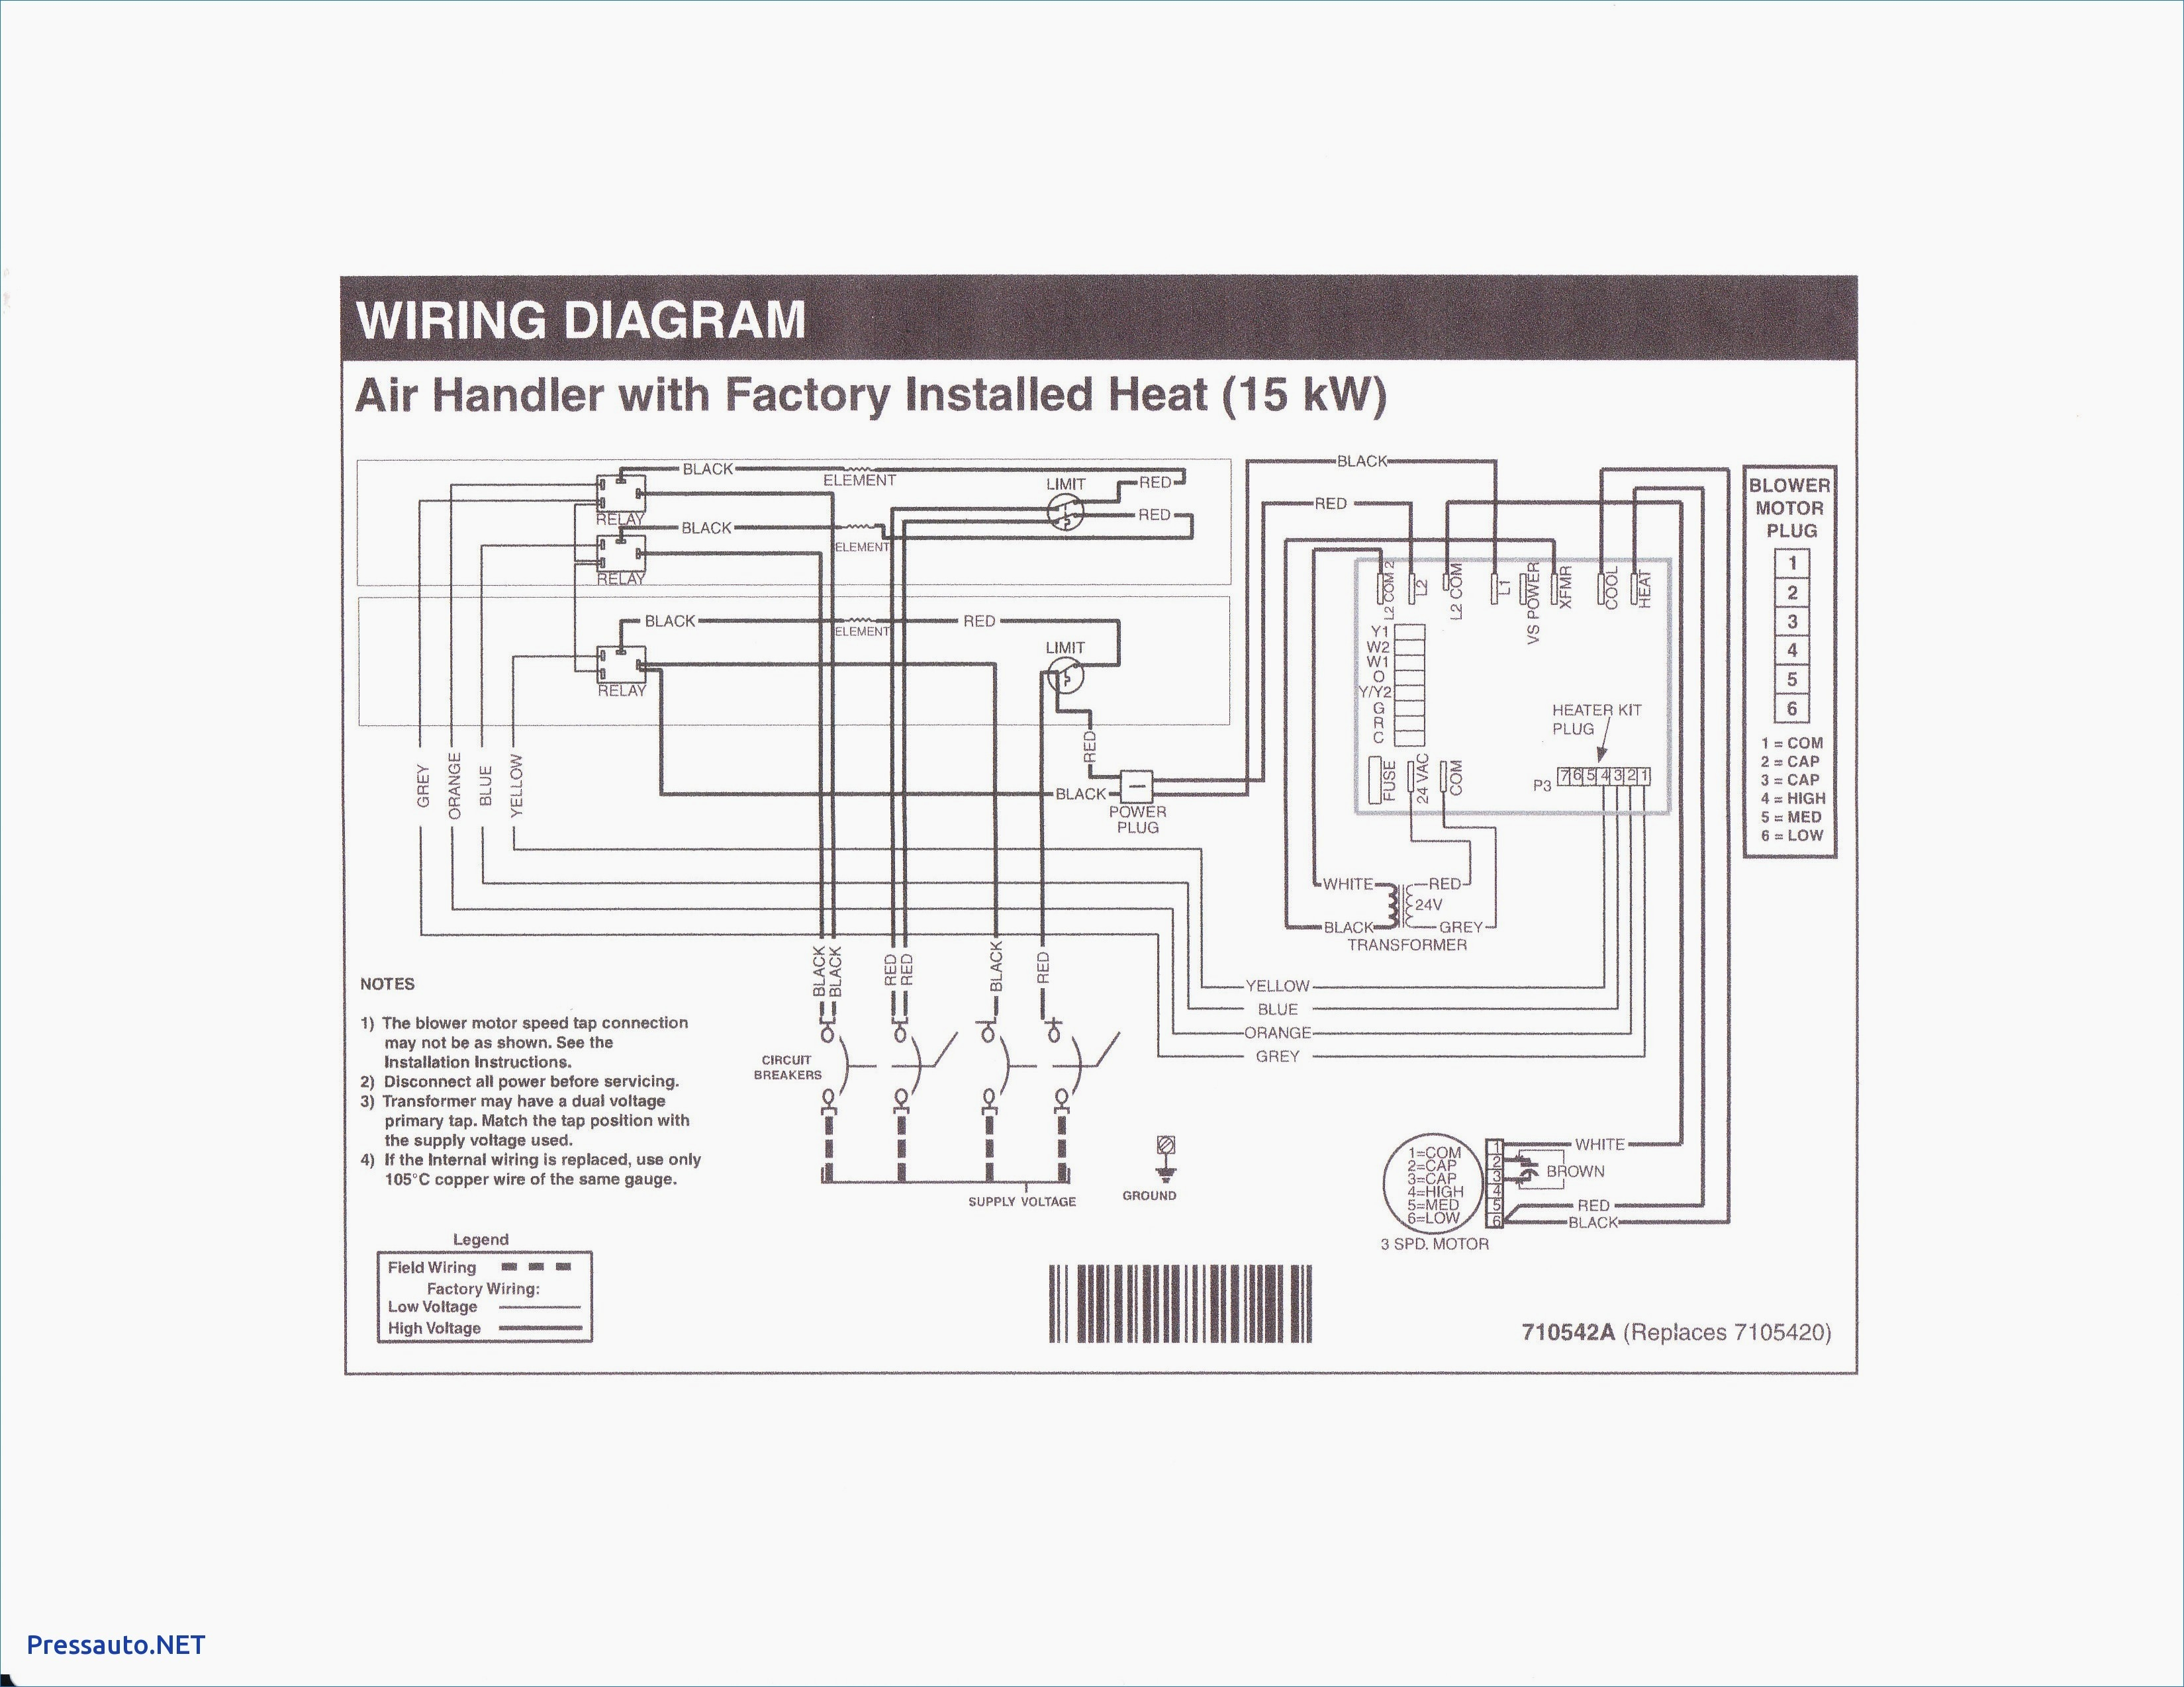 Wiring Diagram For Mobile Home Furnace Free Wiring Diagram